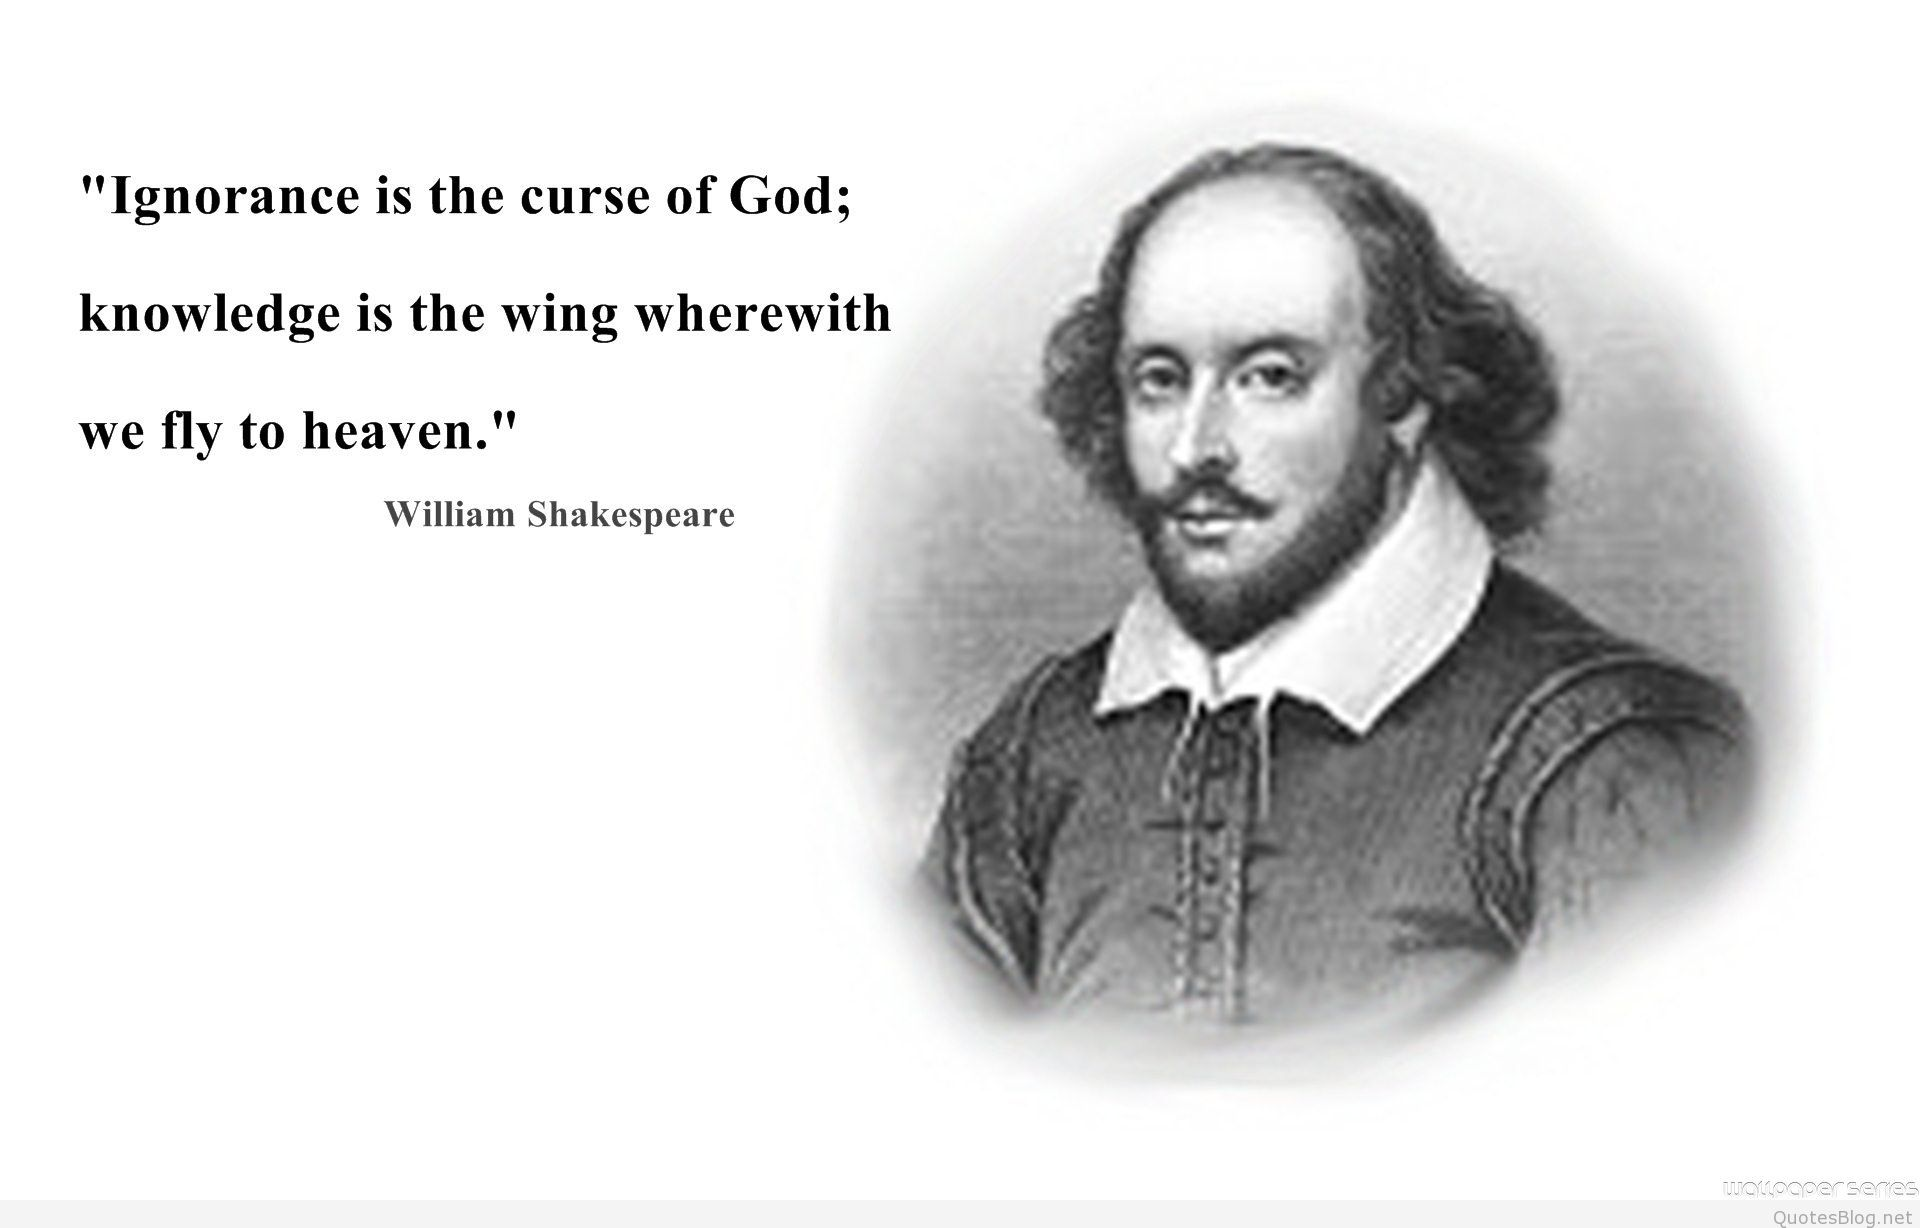 William Shakespeare best quotes images 1920x1228